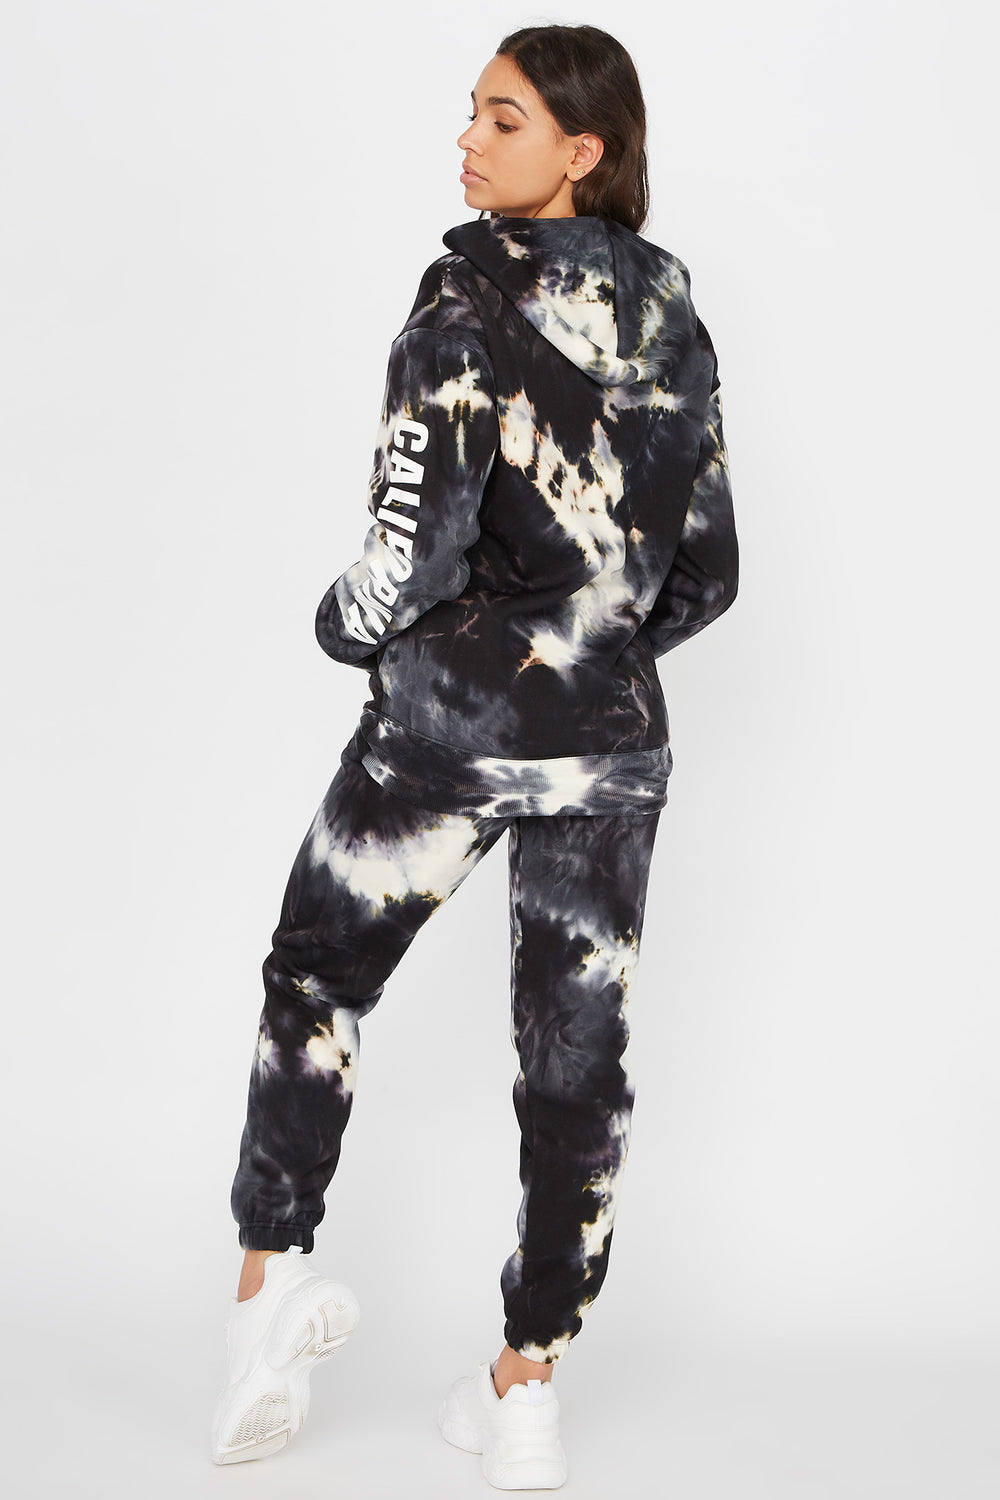 Fleece Tie Dye Jogger Black with White